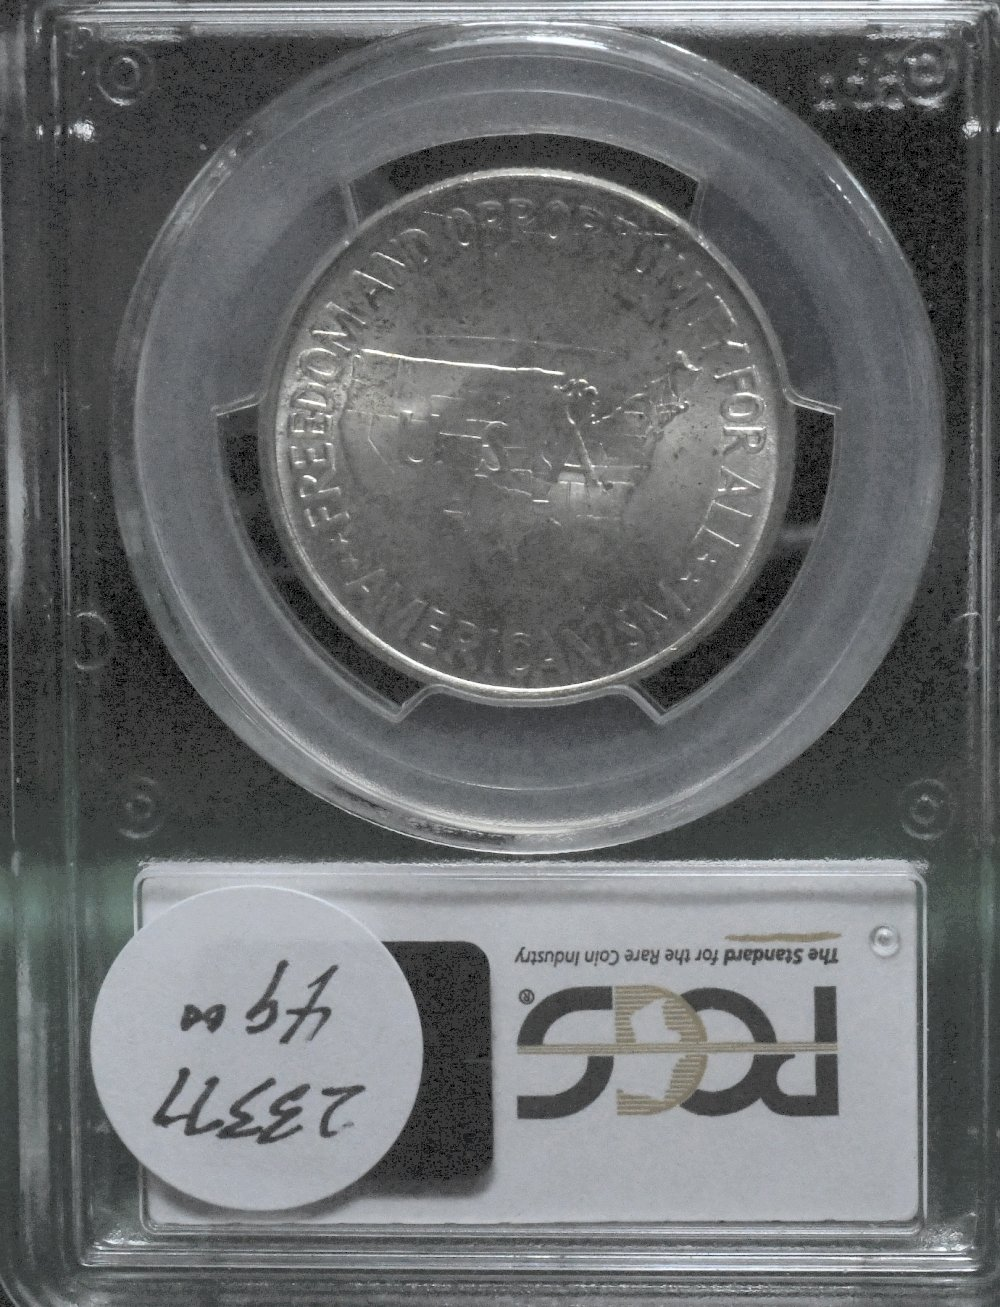 1952 Wash-Car 50c PCGS MS65 for sale.